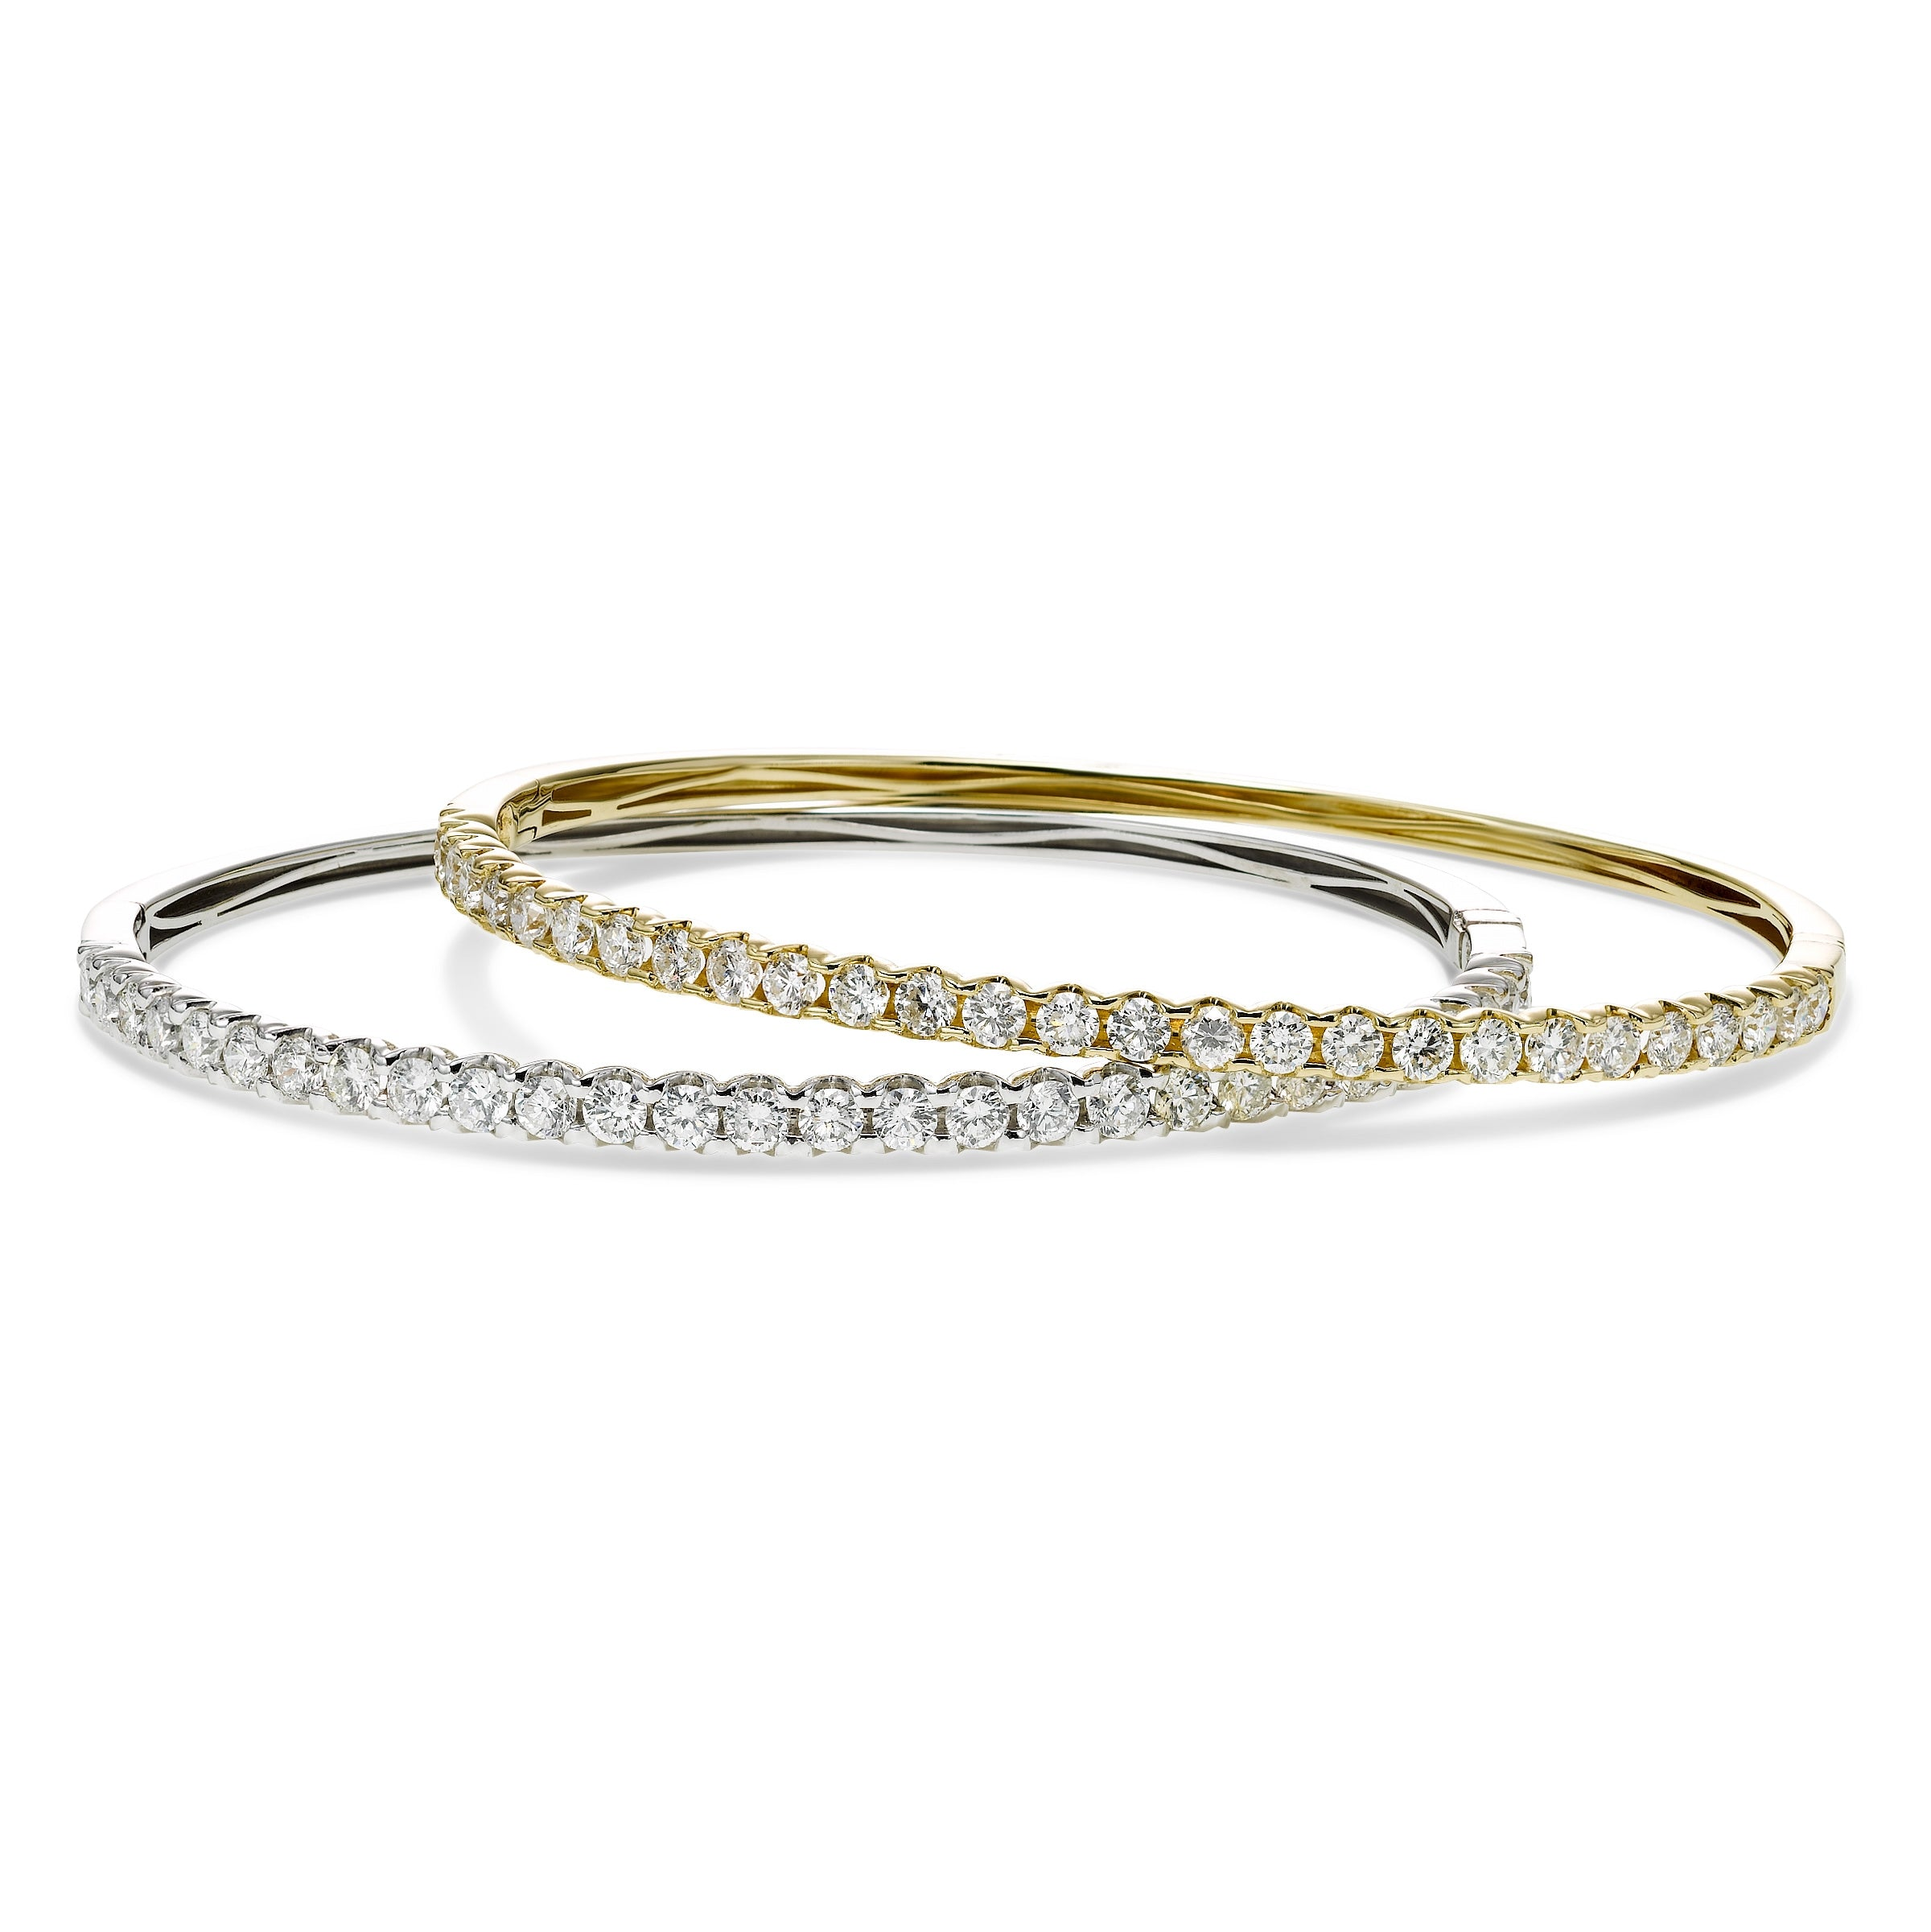 Diamond Bangle Bracelet, 2.50 Carats, 14K White Gold